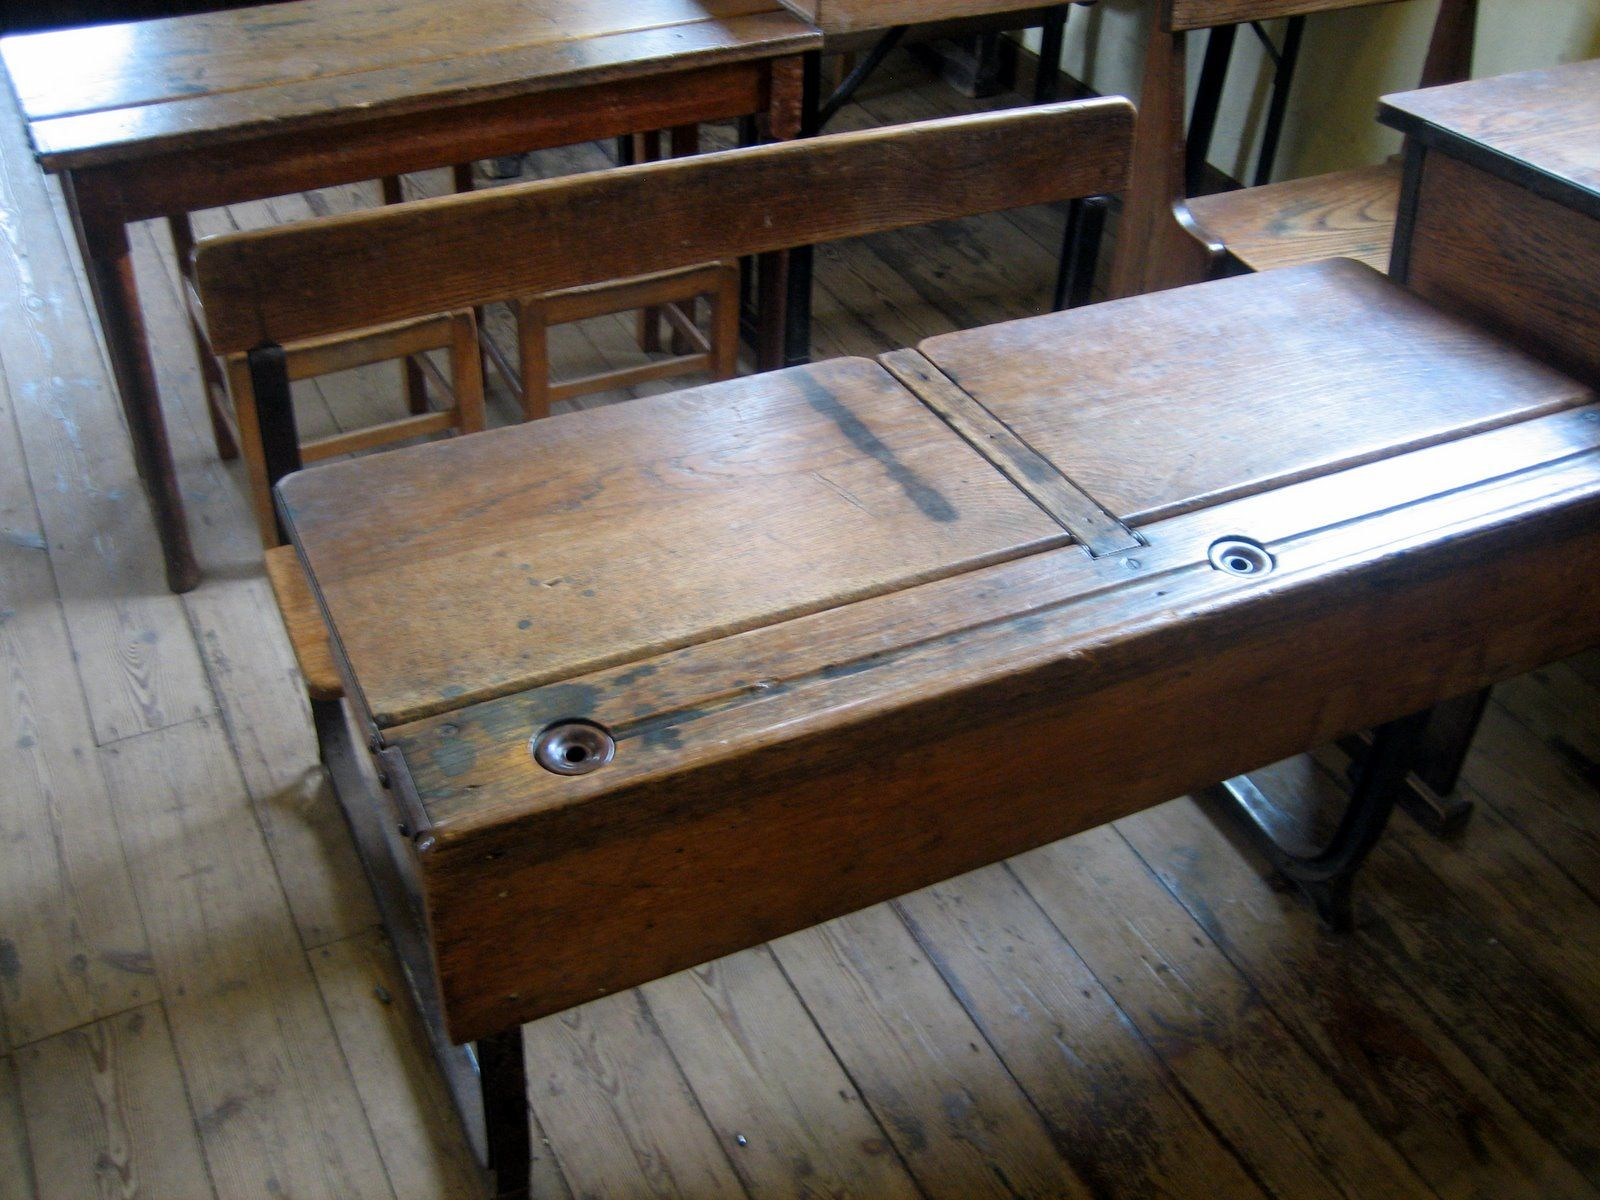 School Desks With Ink Wells I Sat At Like This In Primary